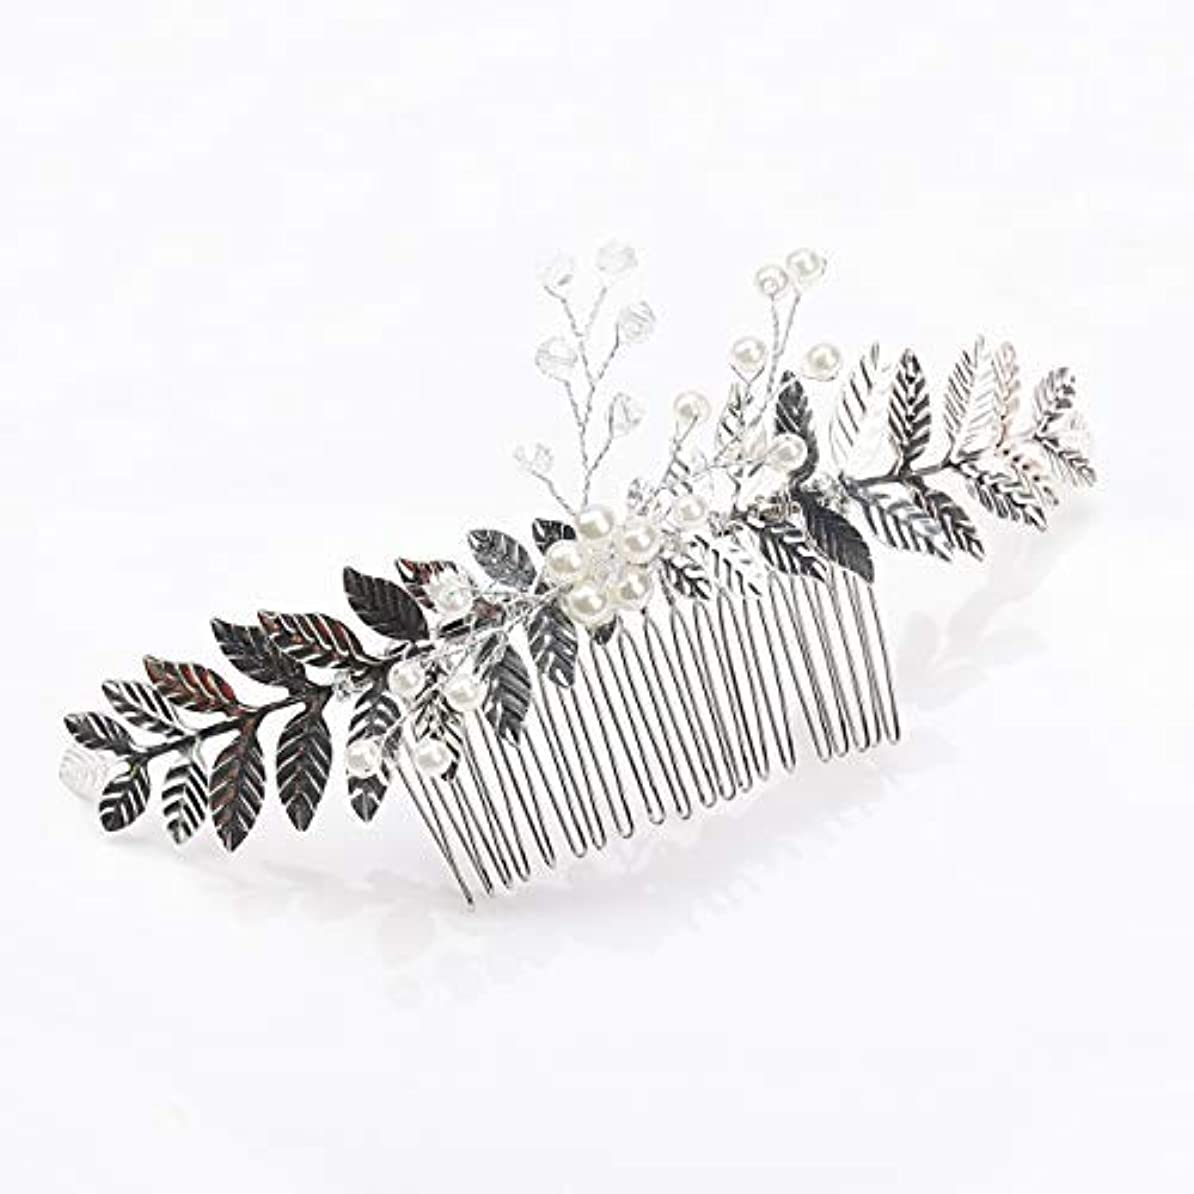 方向ロードされた挑発するKercisbeauty Rustic Wedding Oliver Branch Pearl Flower and Crystal Hair Comb for Bride Bridesmaid Prom Headpiece...